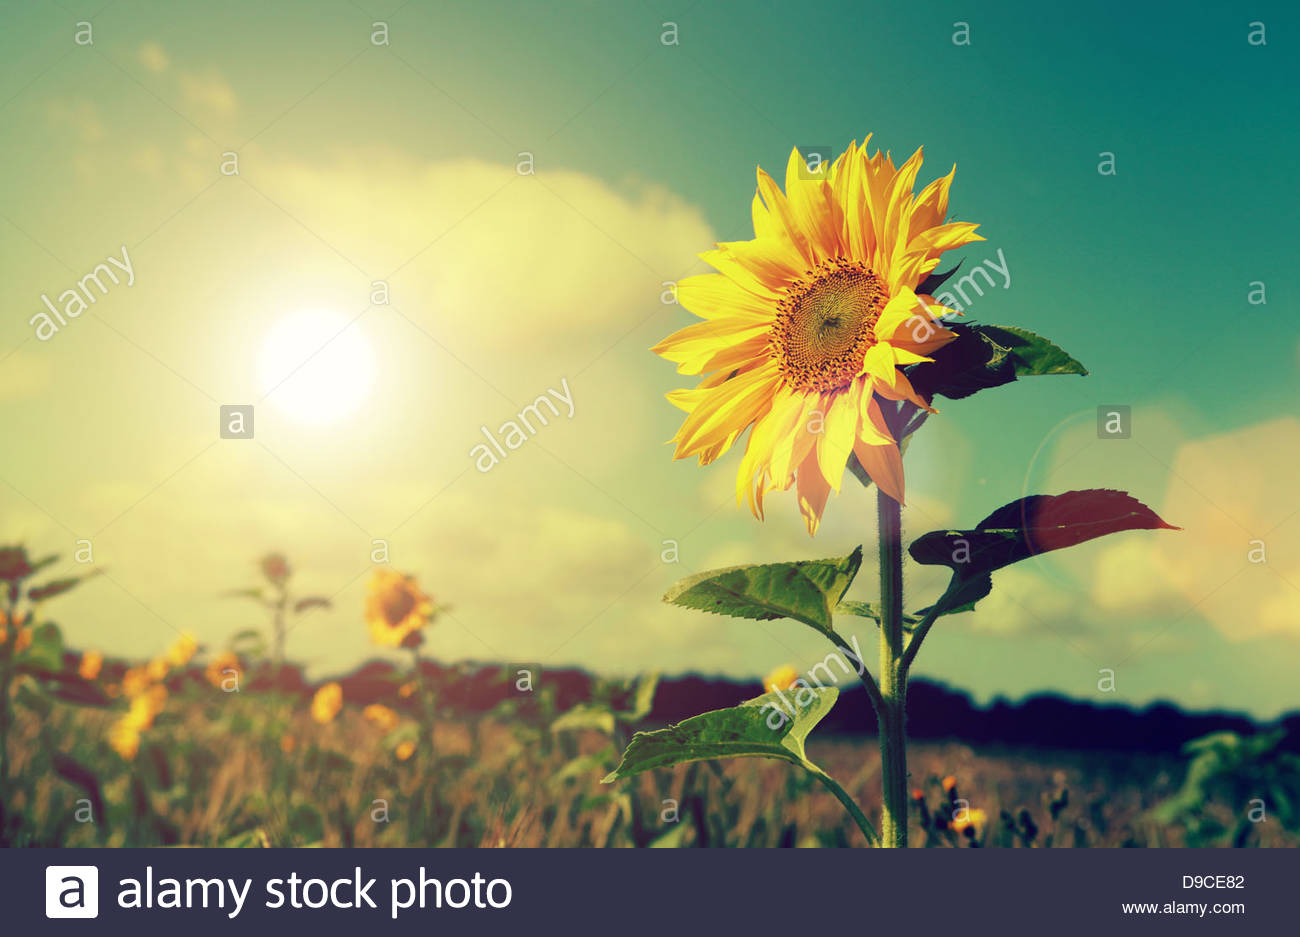 sun and sunflower - Stock Image